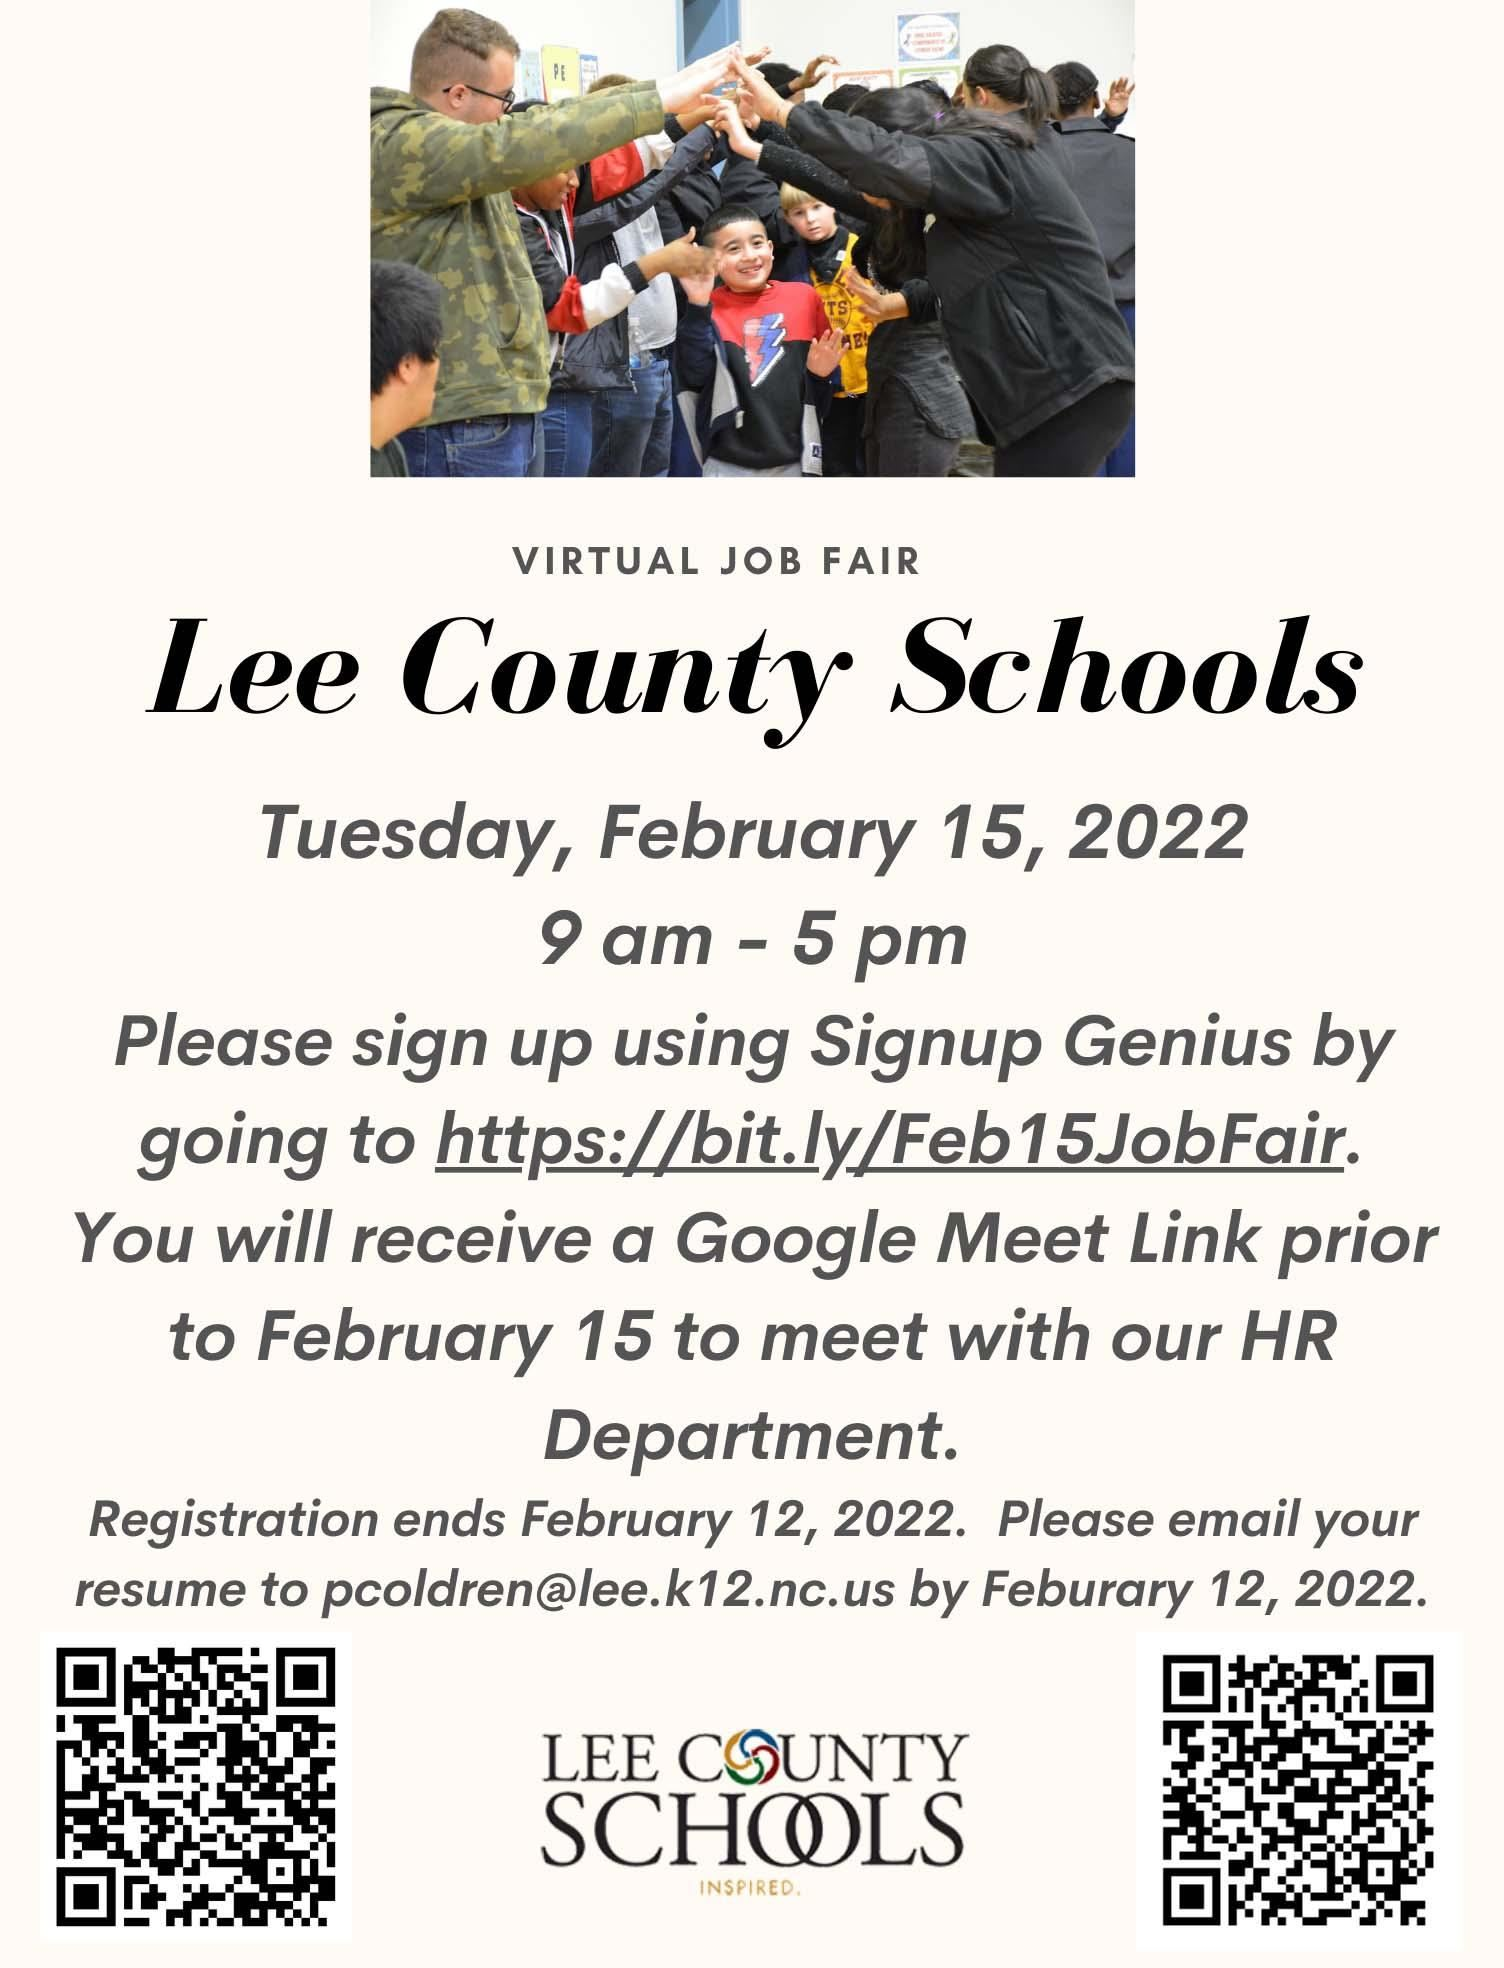 2021 Lee County Schools Virtual Job Fair